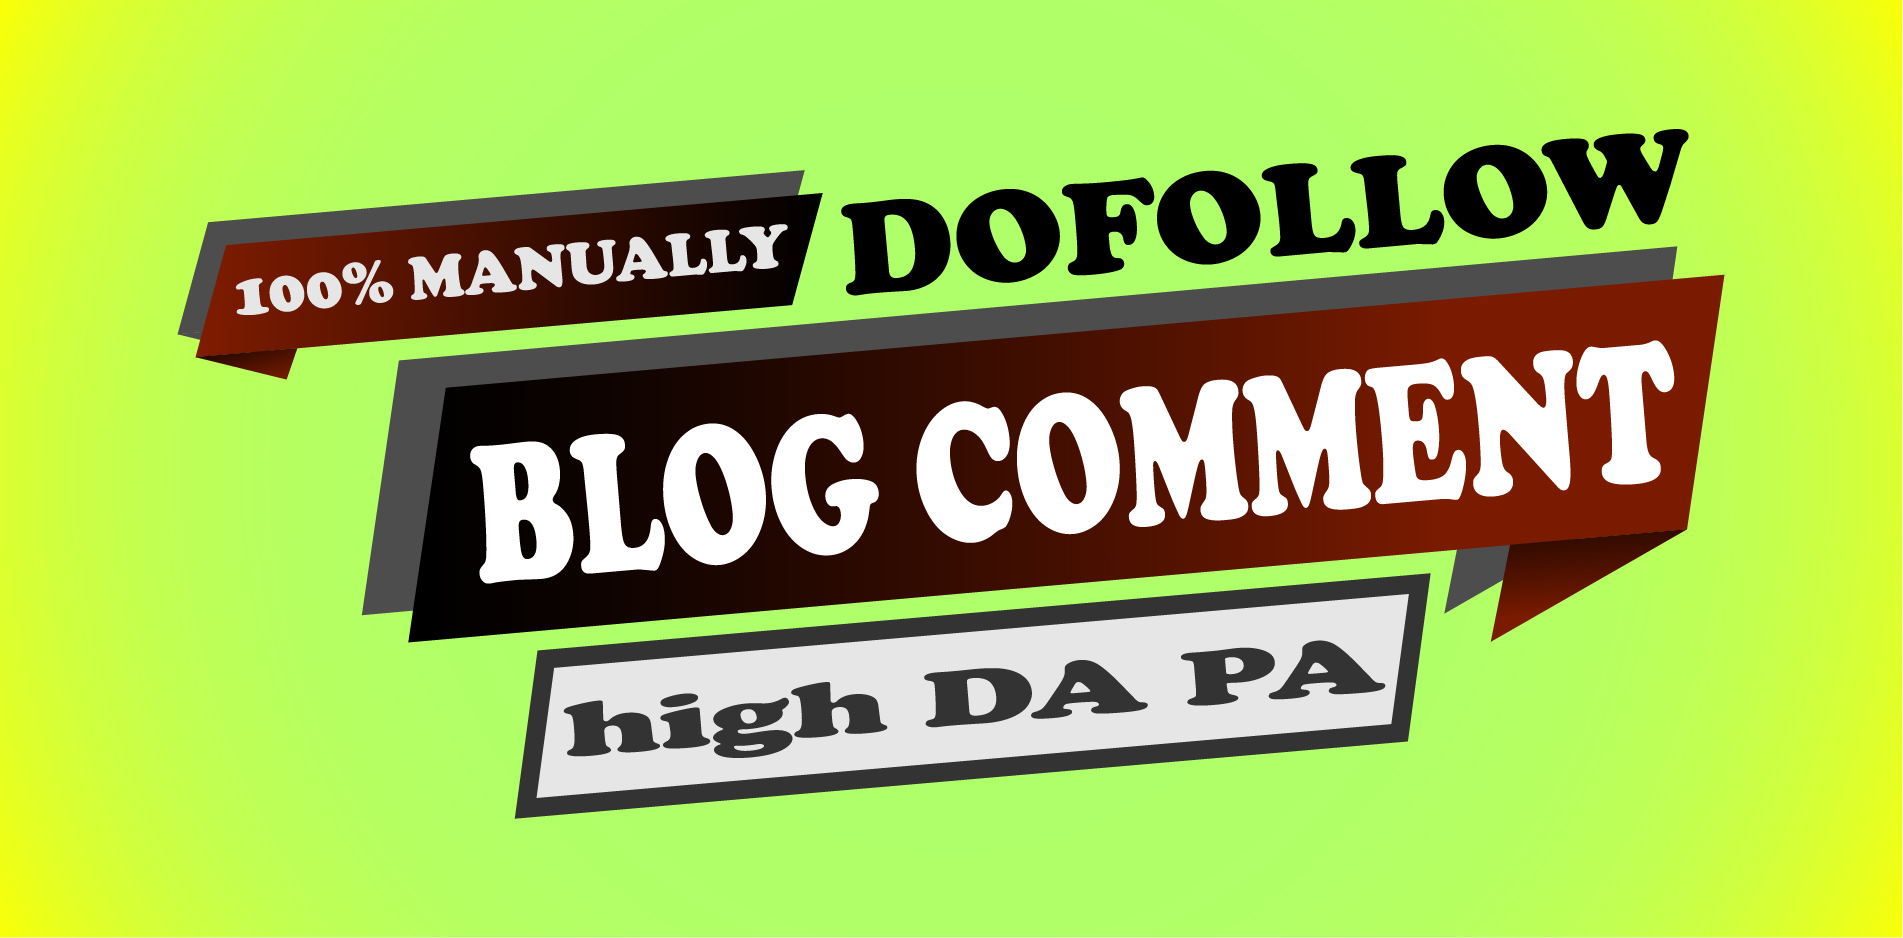 50 dofollow blog comment manually with high DA PA